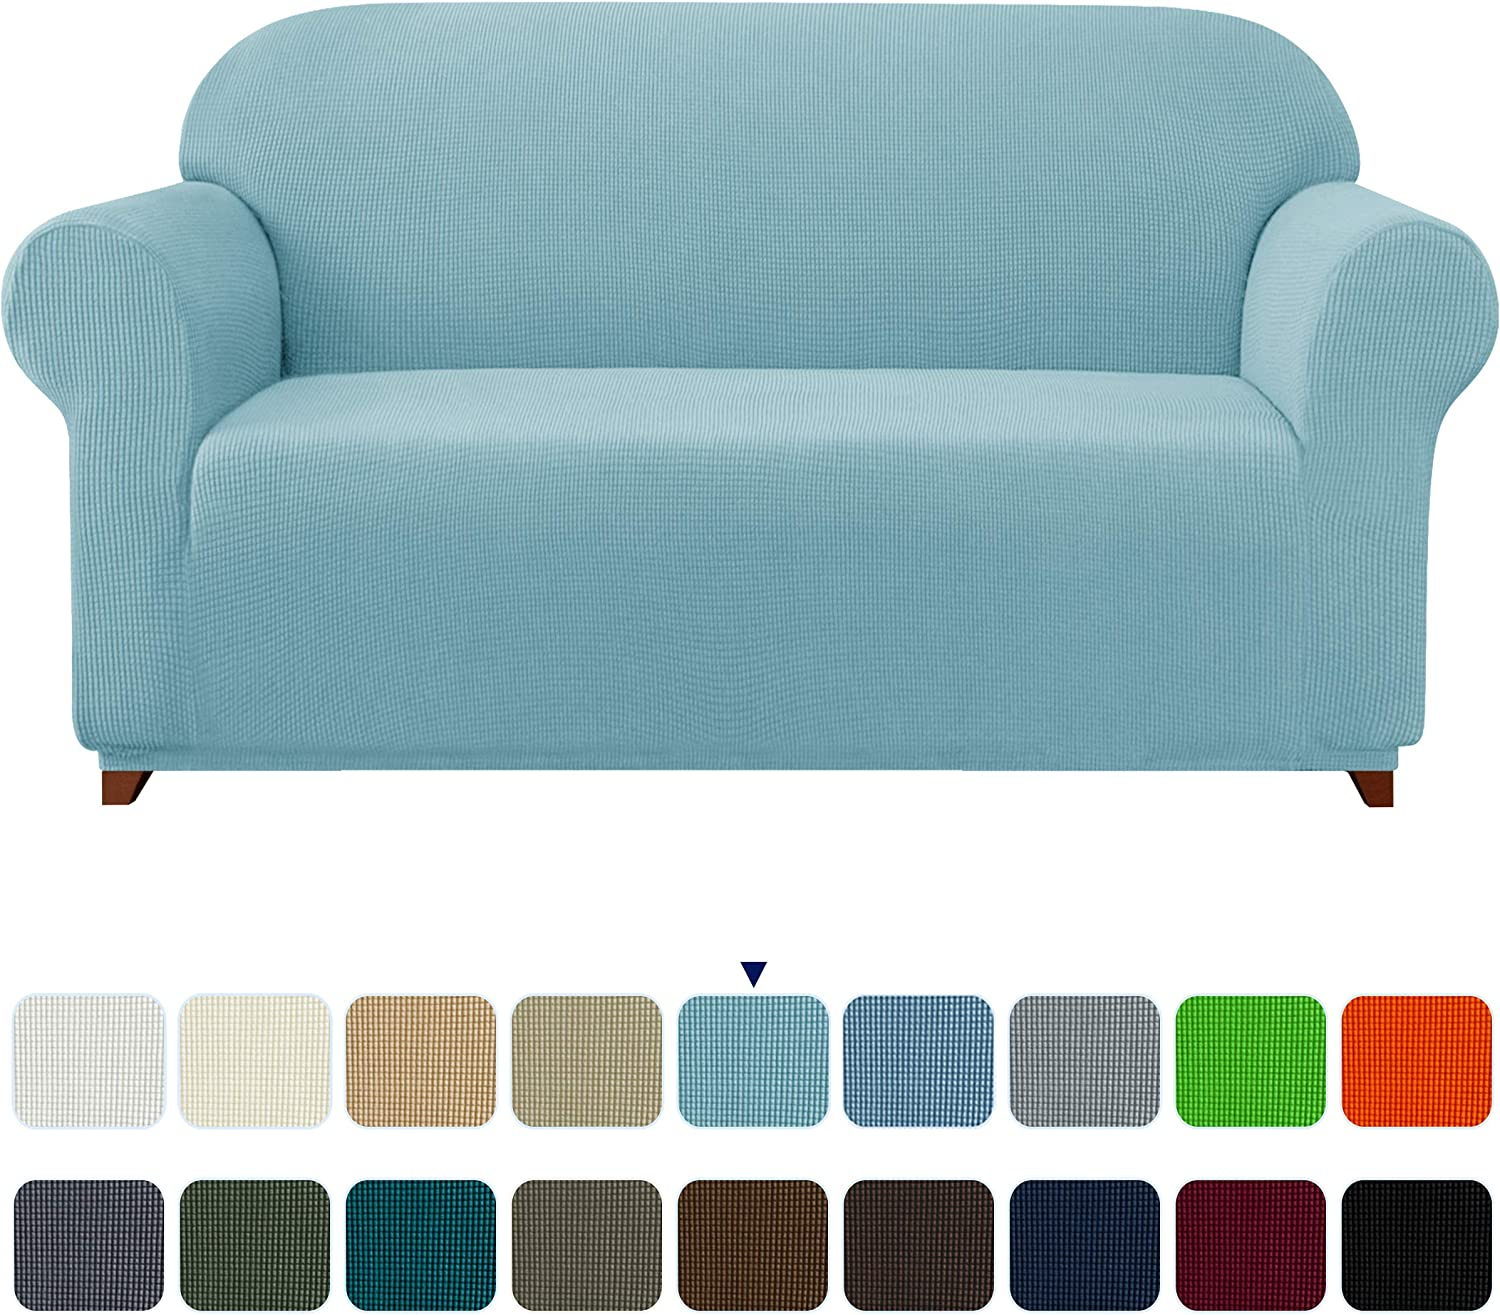 subrtex Stretch Sofa Cover 1-Piece Couch Slipcover Furniture Protector for Arm Chair Loveseat Coat Soft with Elastic Bottom, Polyester and Spandex Jacquard Fabric Small Checks (Large, Steel Blue): Home & Kitchen